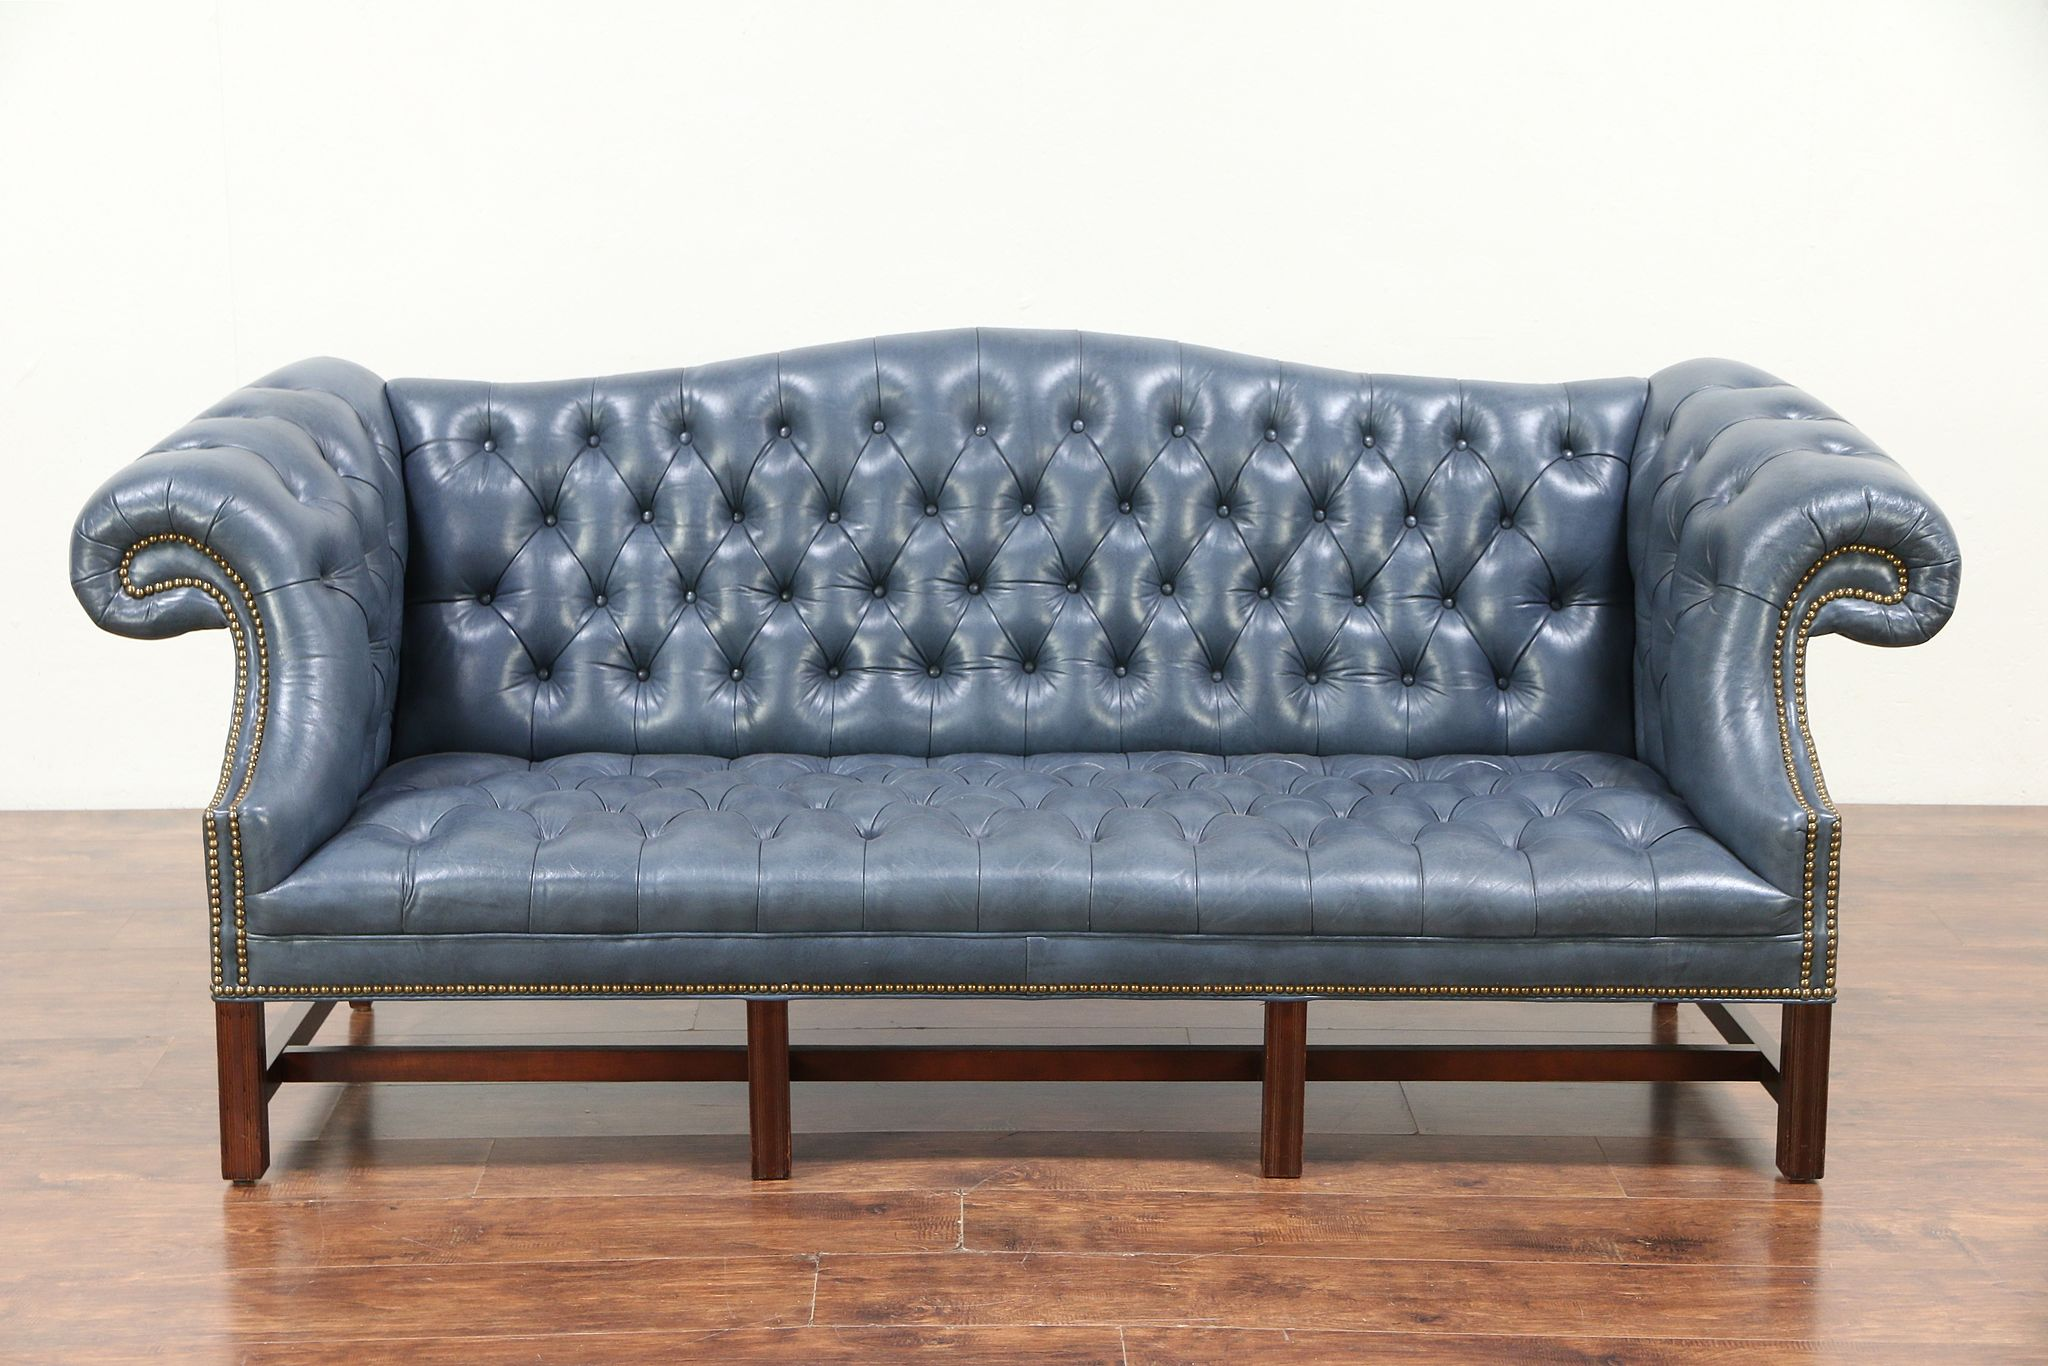 Vintage Couch Chesterfield Tufted Leather Vintage Sofa Brass Nailhead Trim 29423